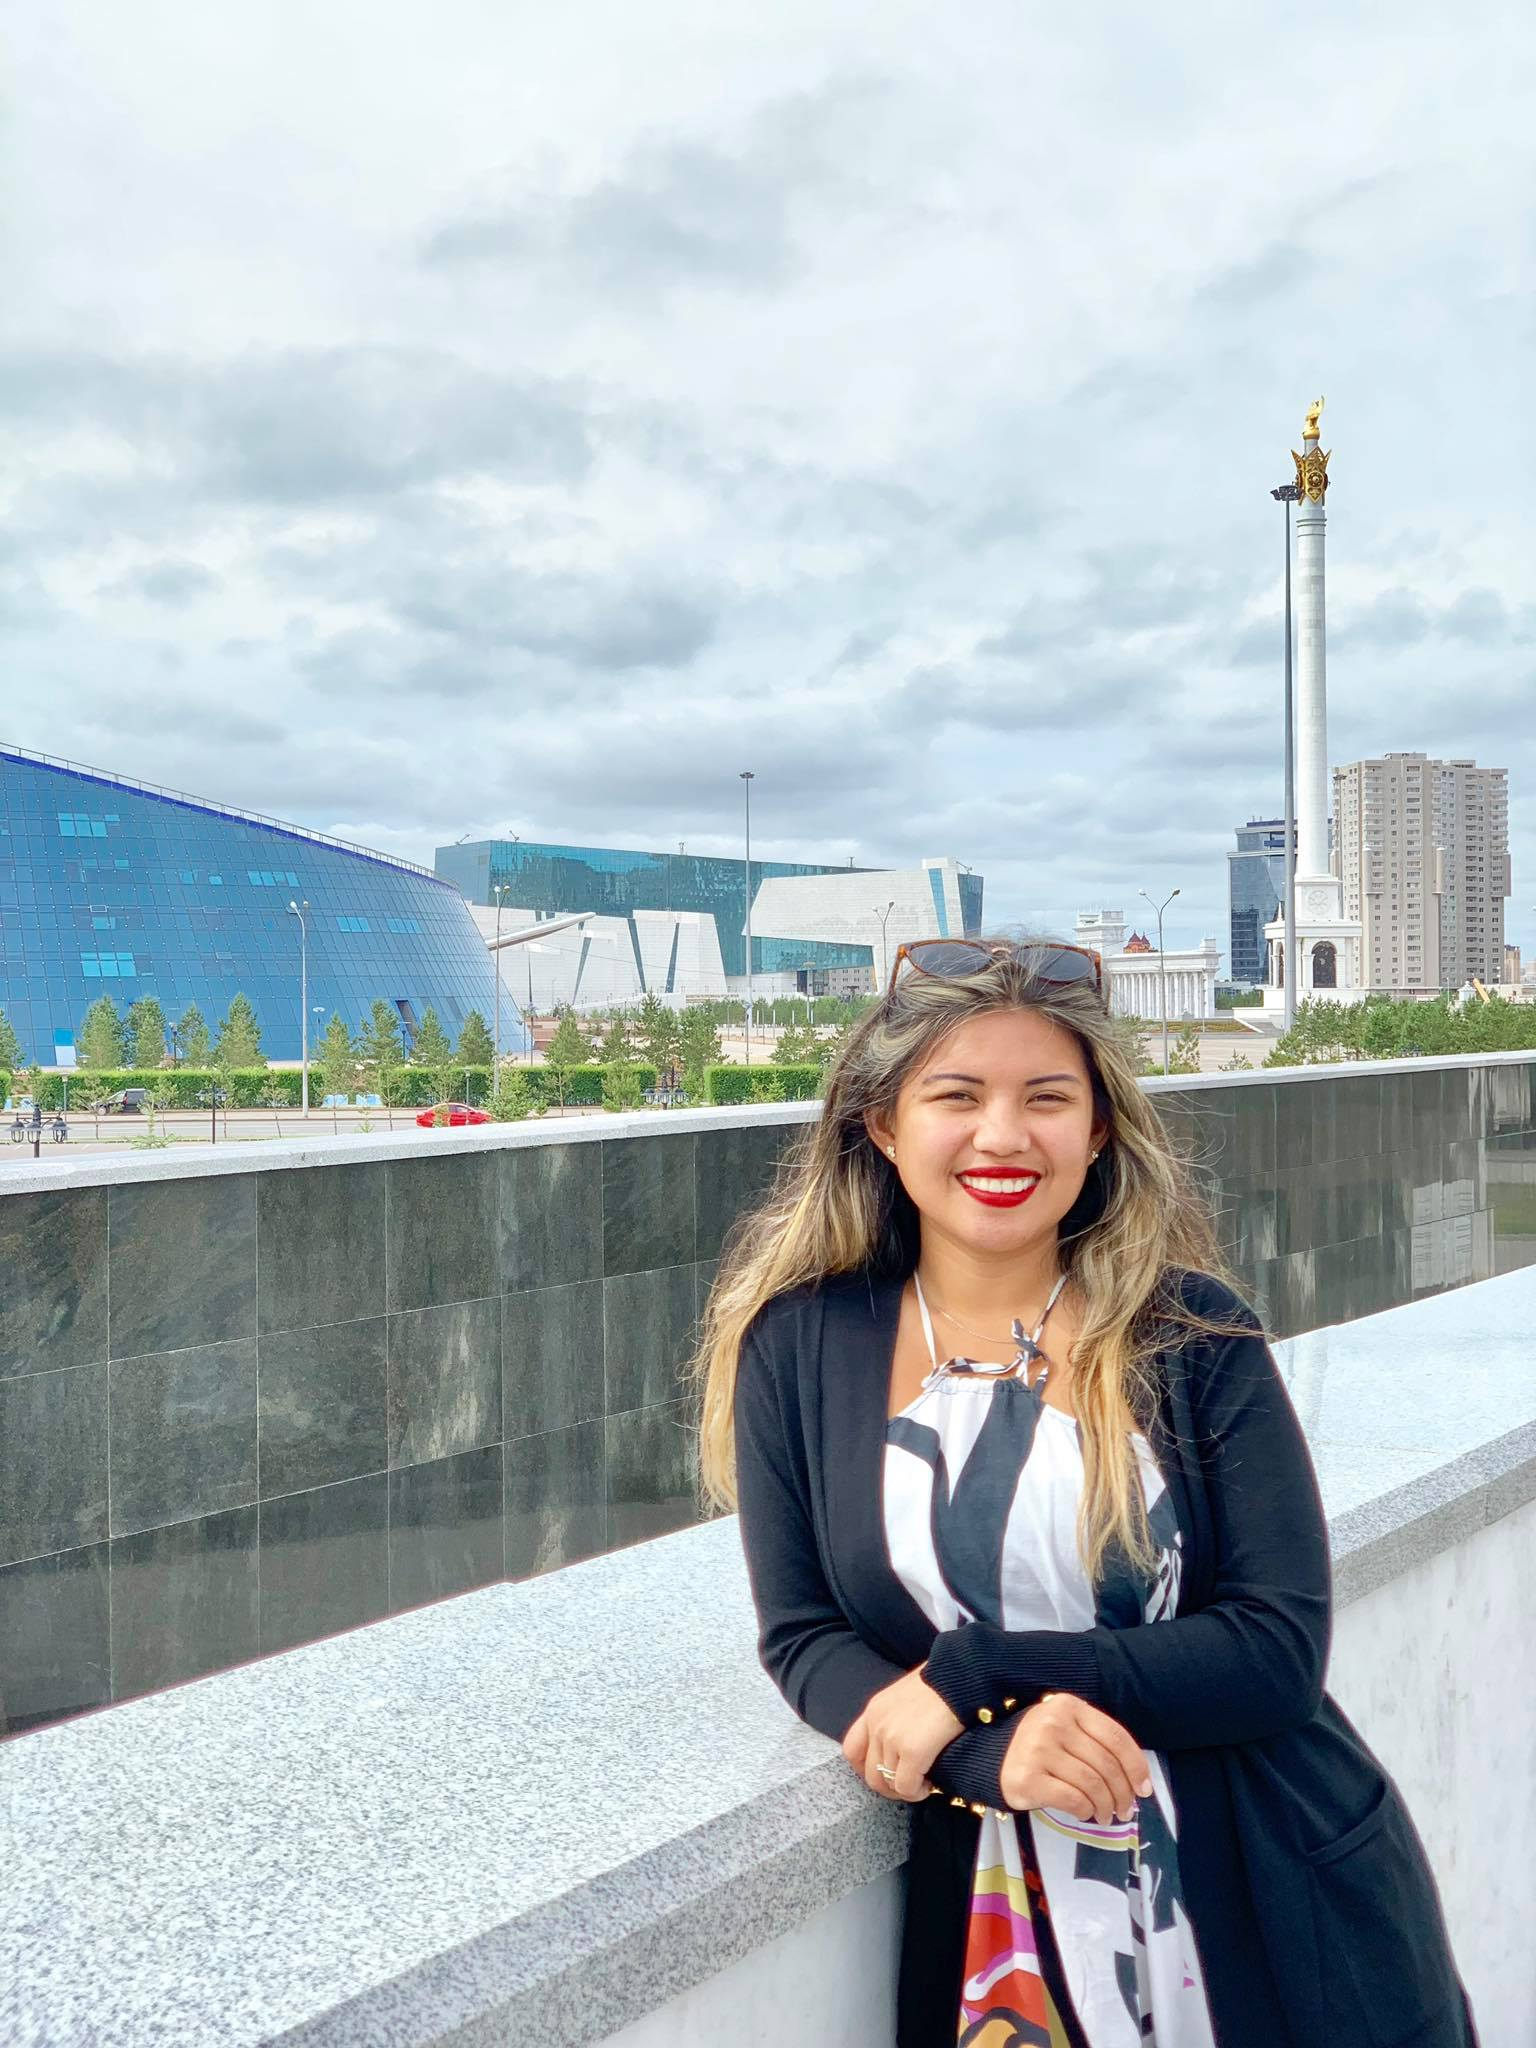 Kach Solo Travels in 2019 Nursultan  Astana - the City of the Future28.jpg